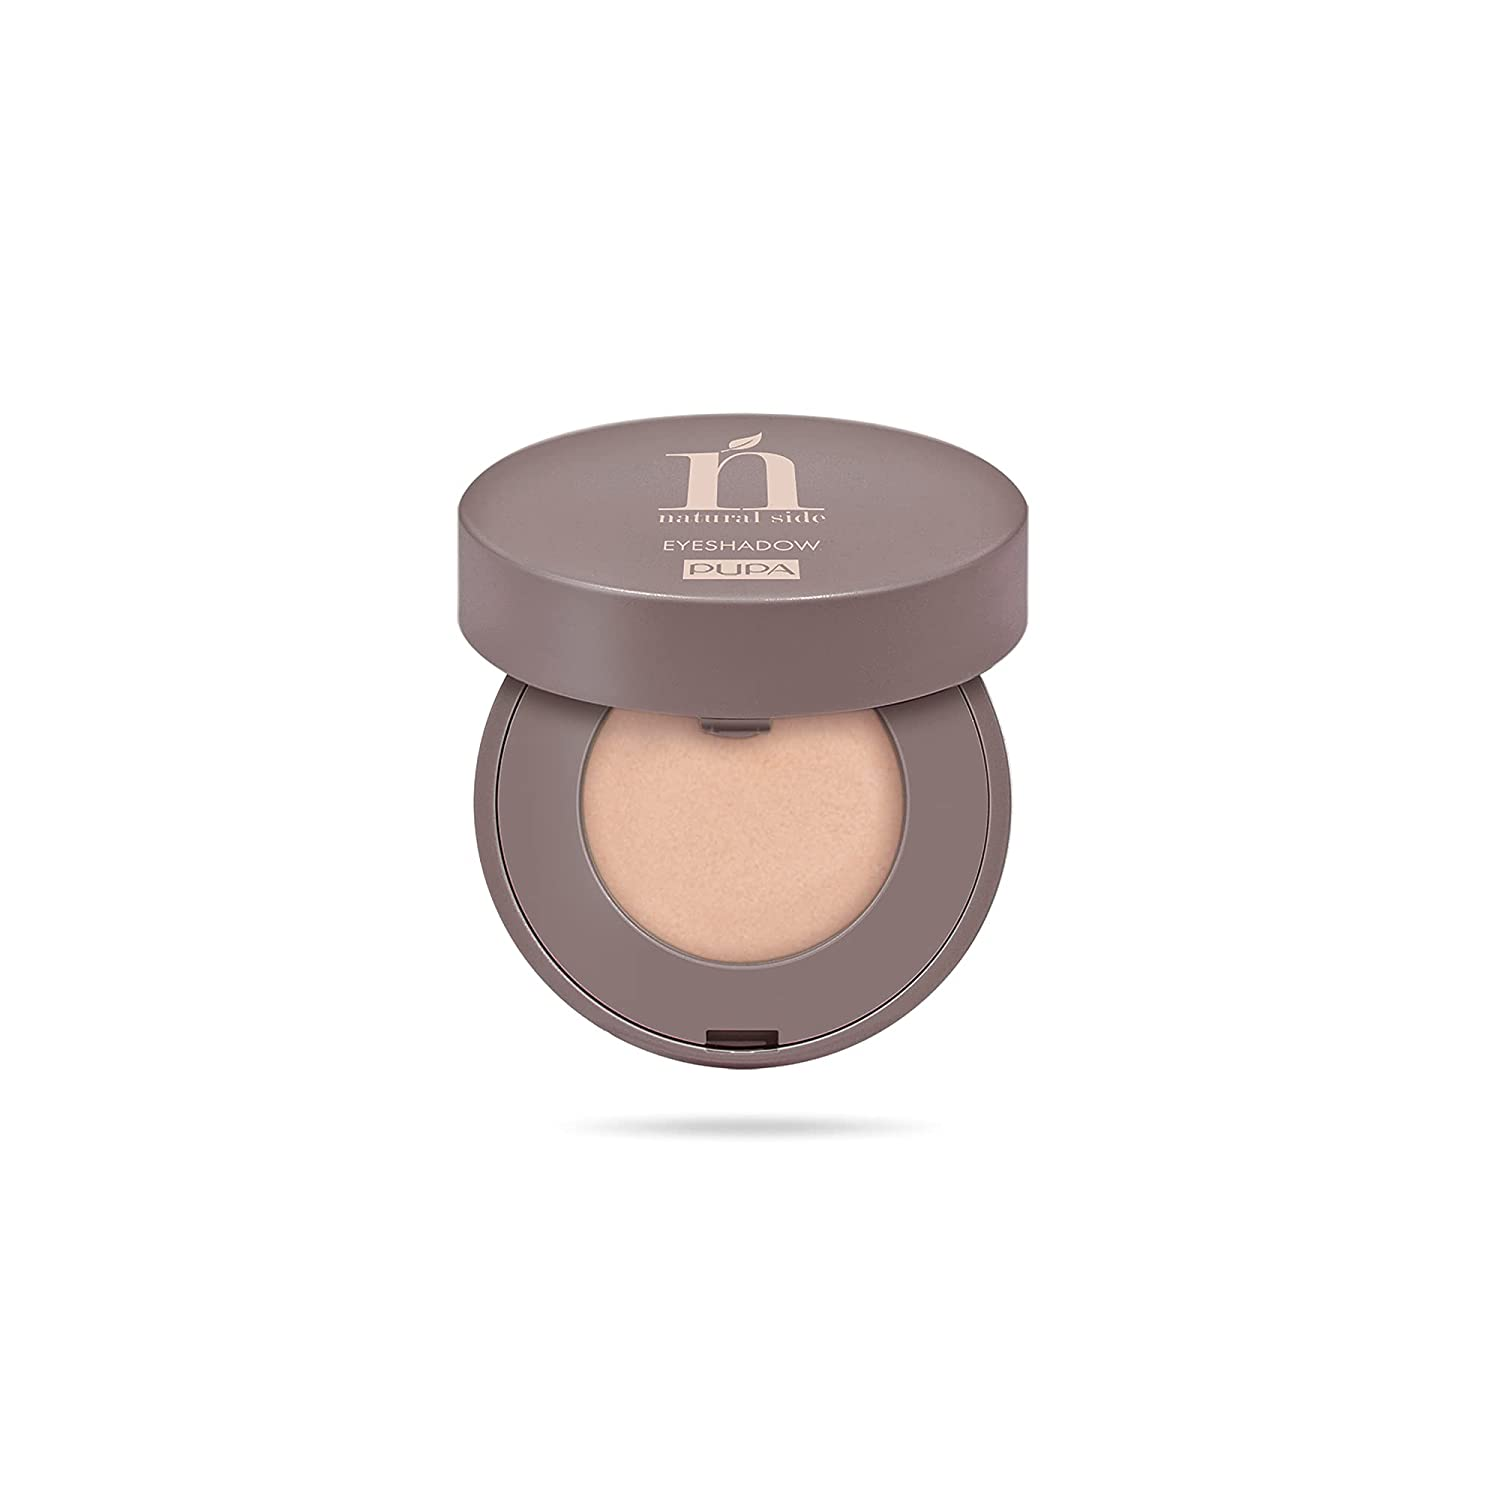 Natural Side Compact Eyeshadow – 004 Light Gold by Pupa Milano for Women – 0.07 oz Eye Shadow